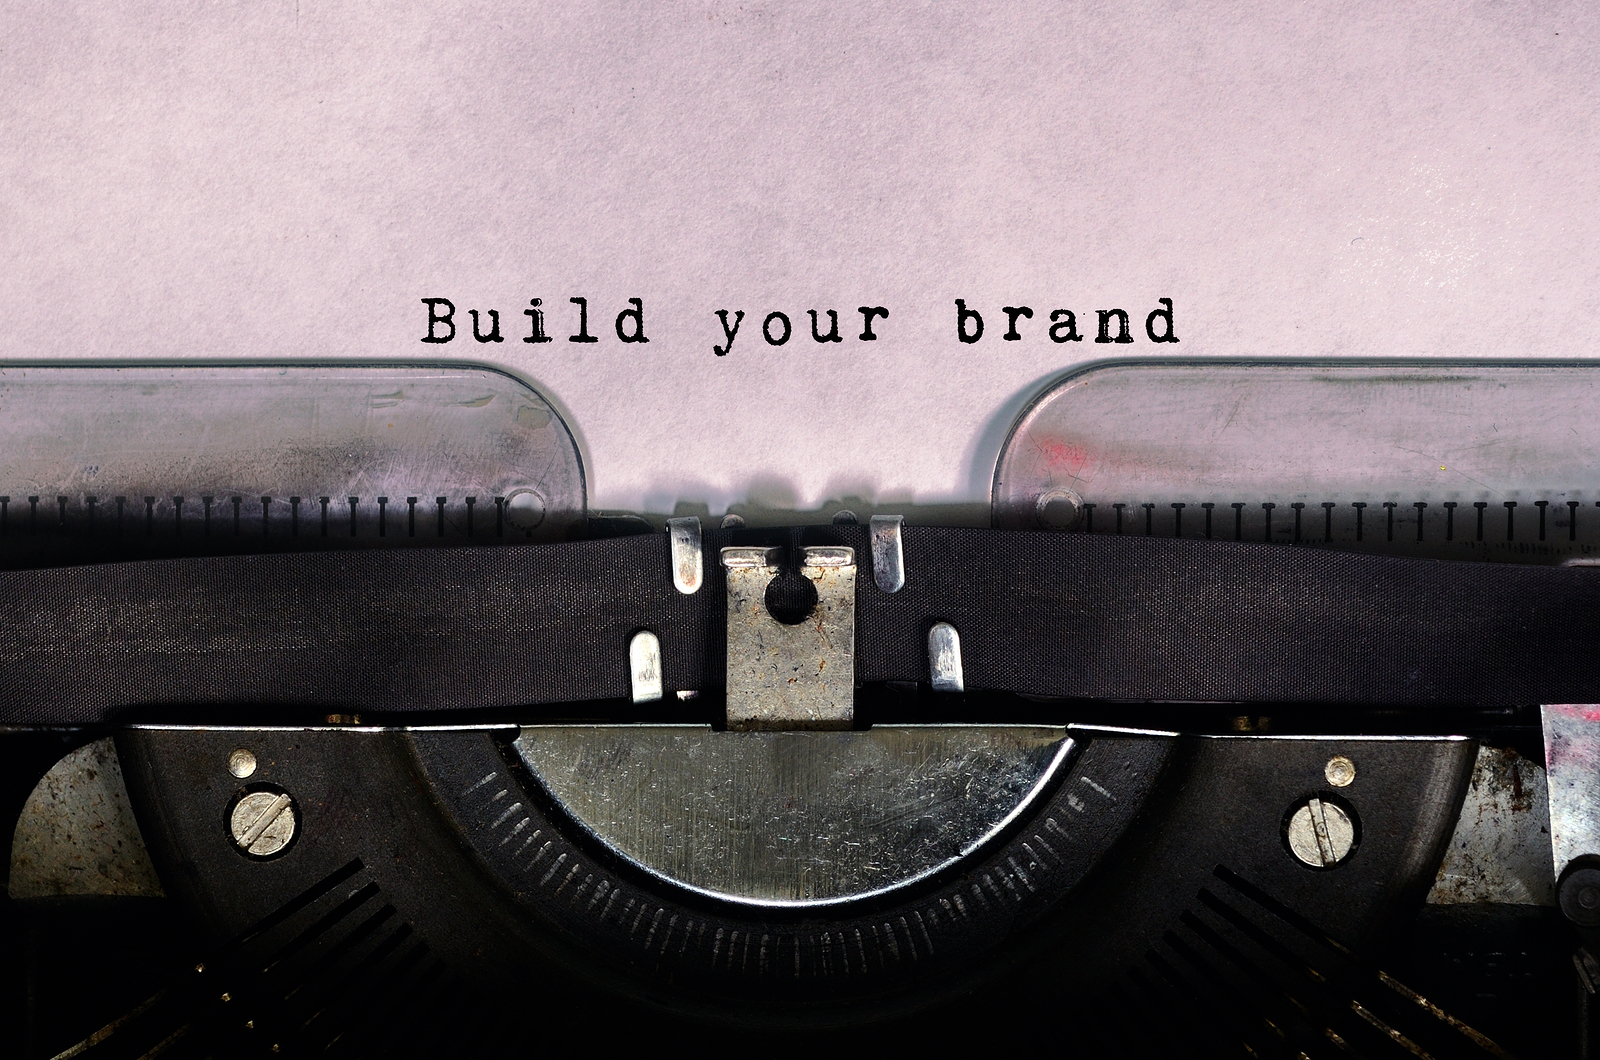 Build your brand typed on a vintage typewriter